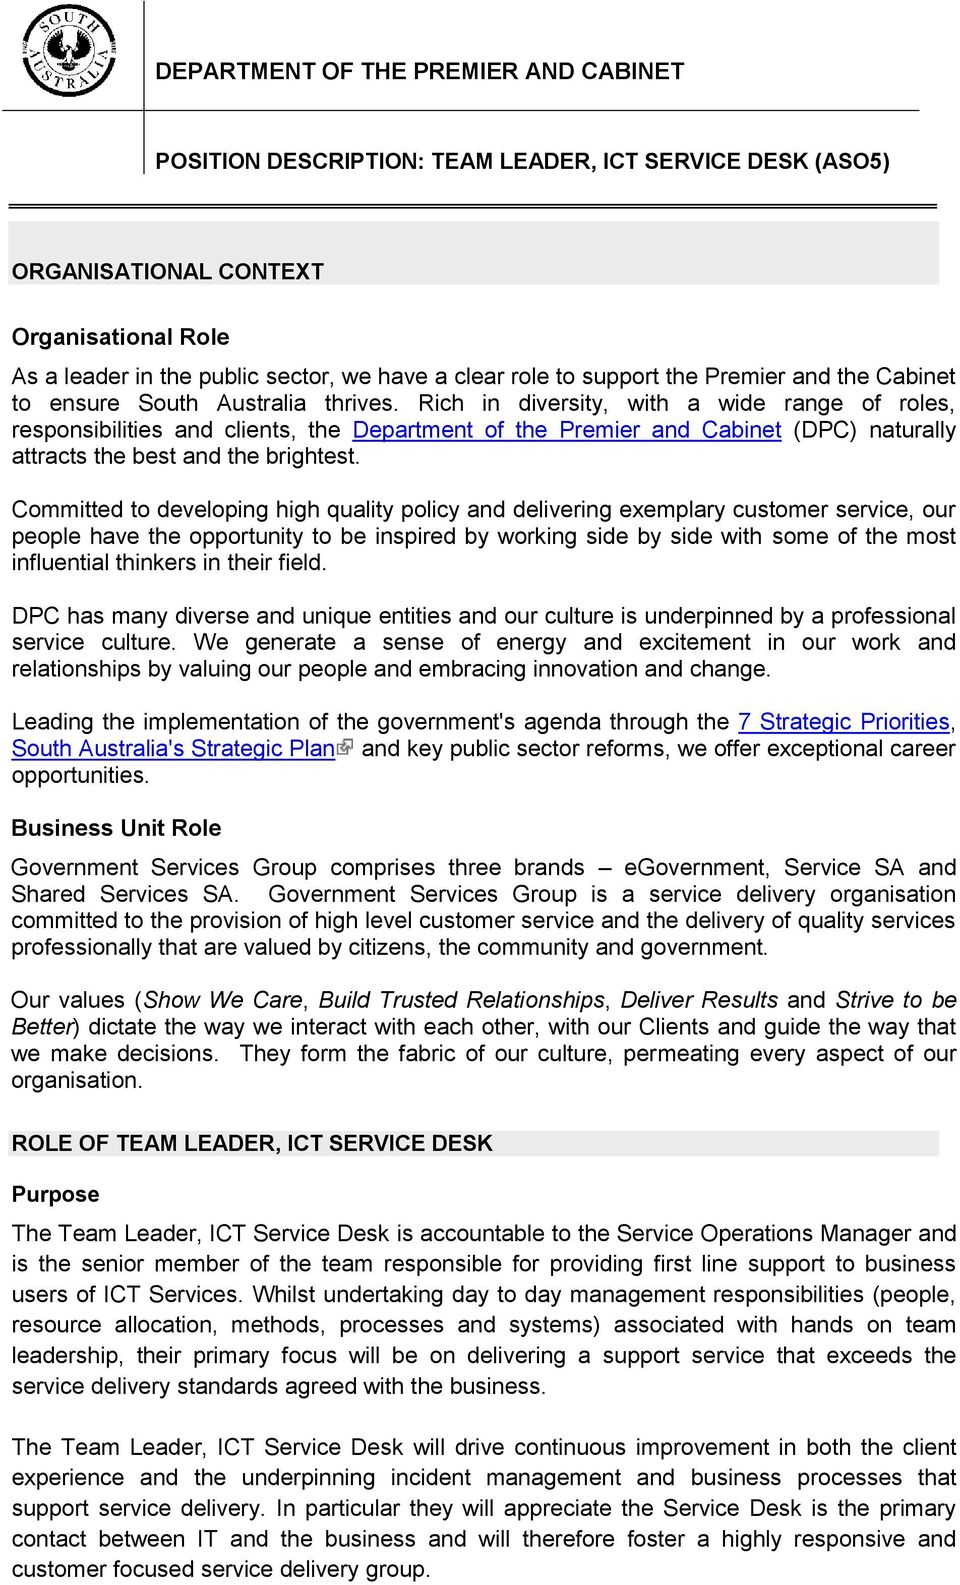 Department Of The Premier And Cabinet Pdf Free Download